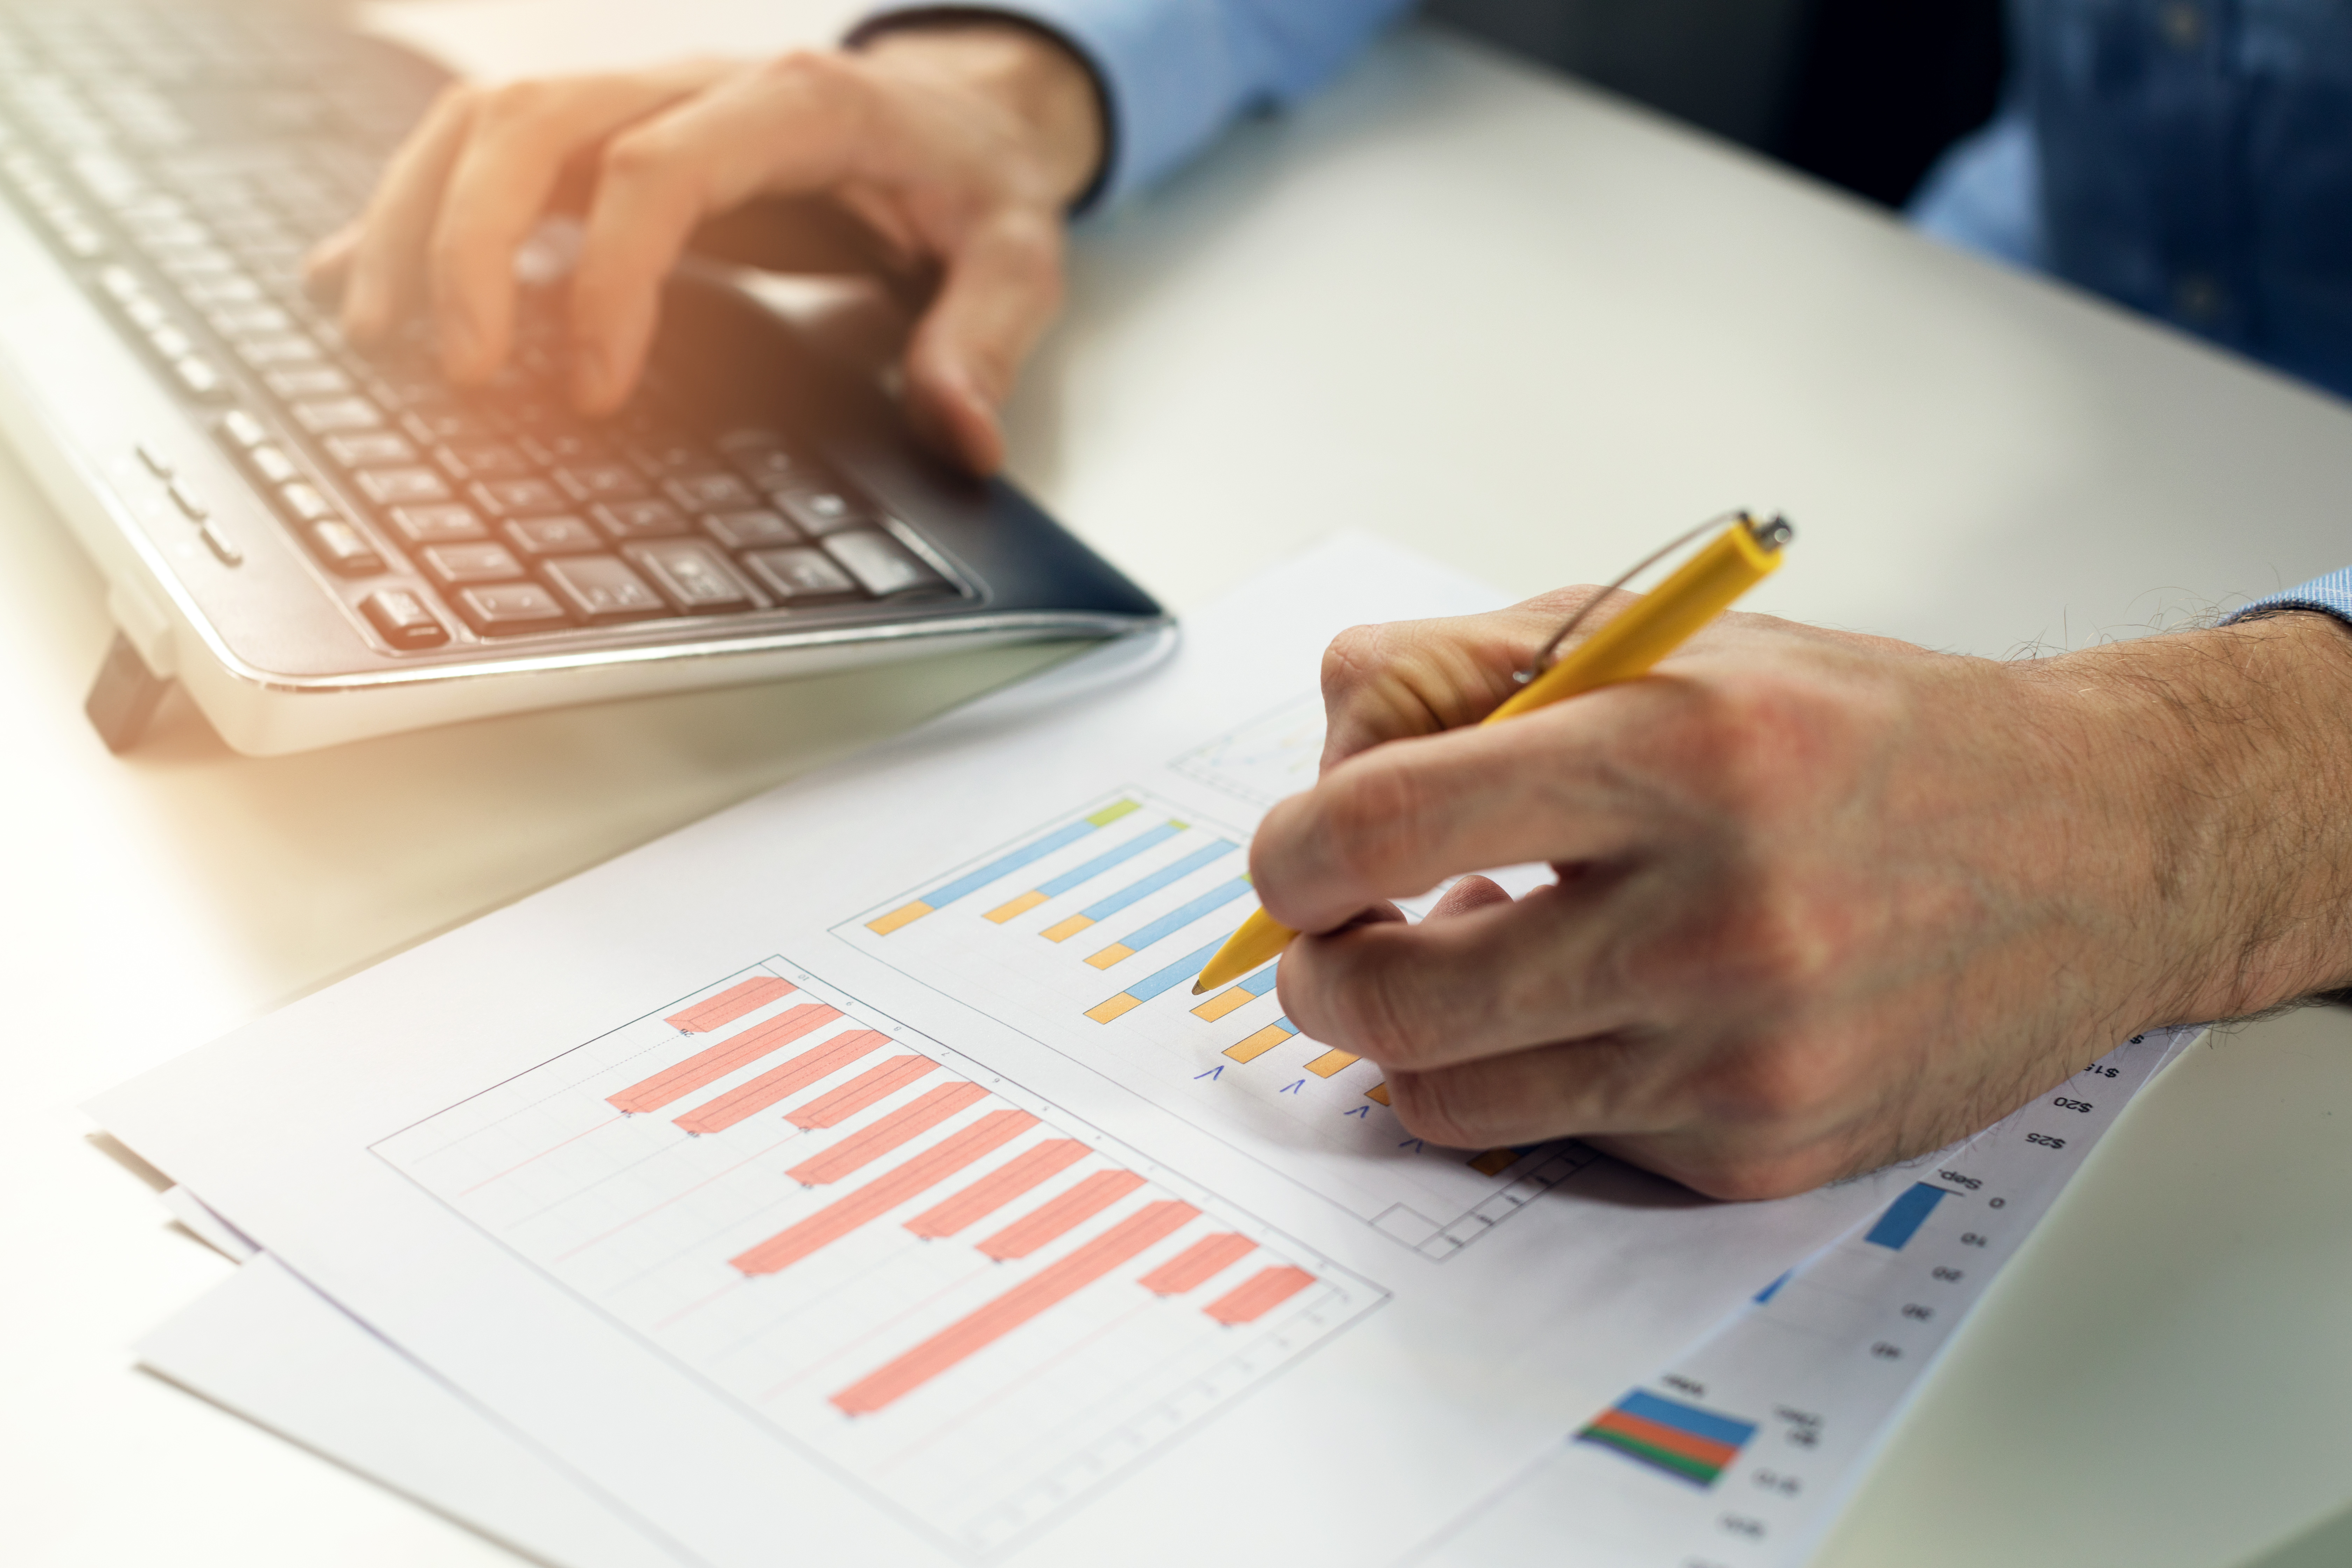 The Disadvantages of Computerized Accounting Systems | Bizfluent